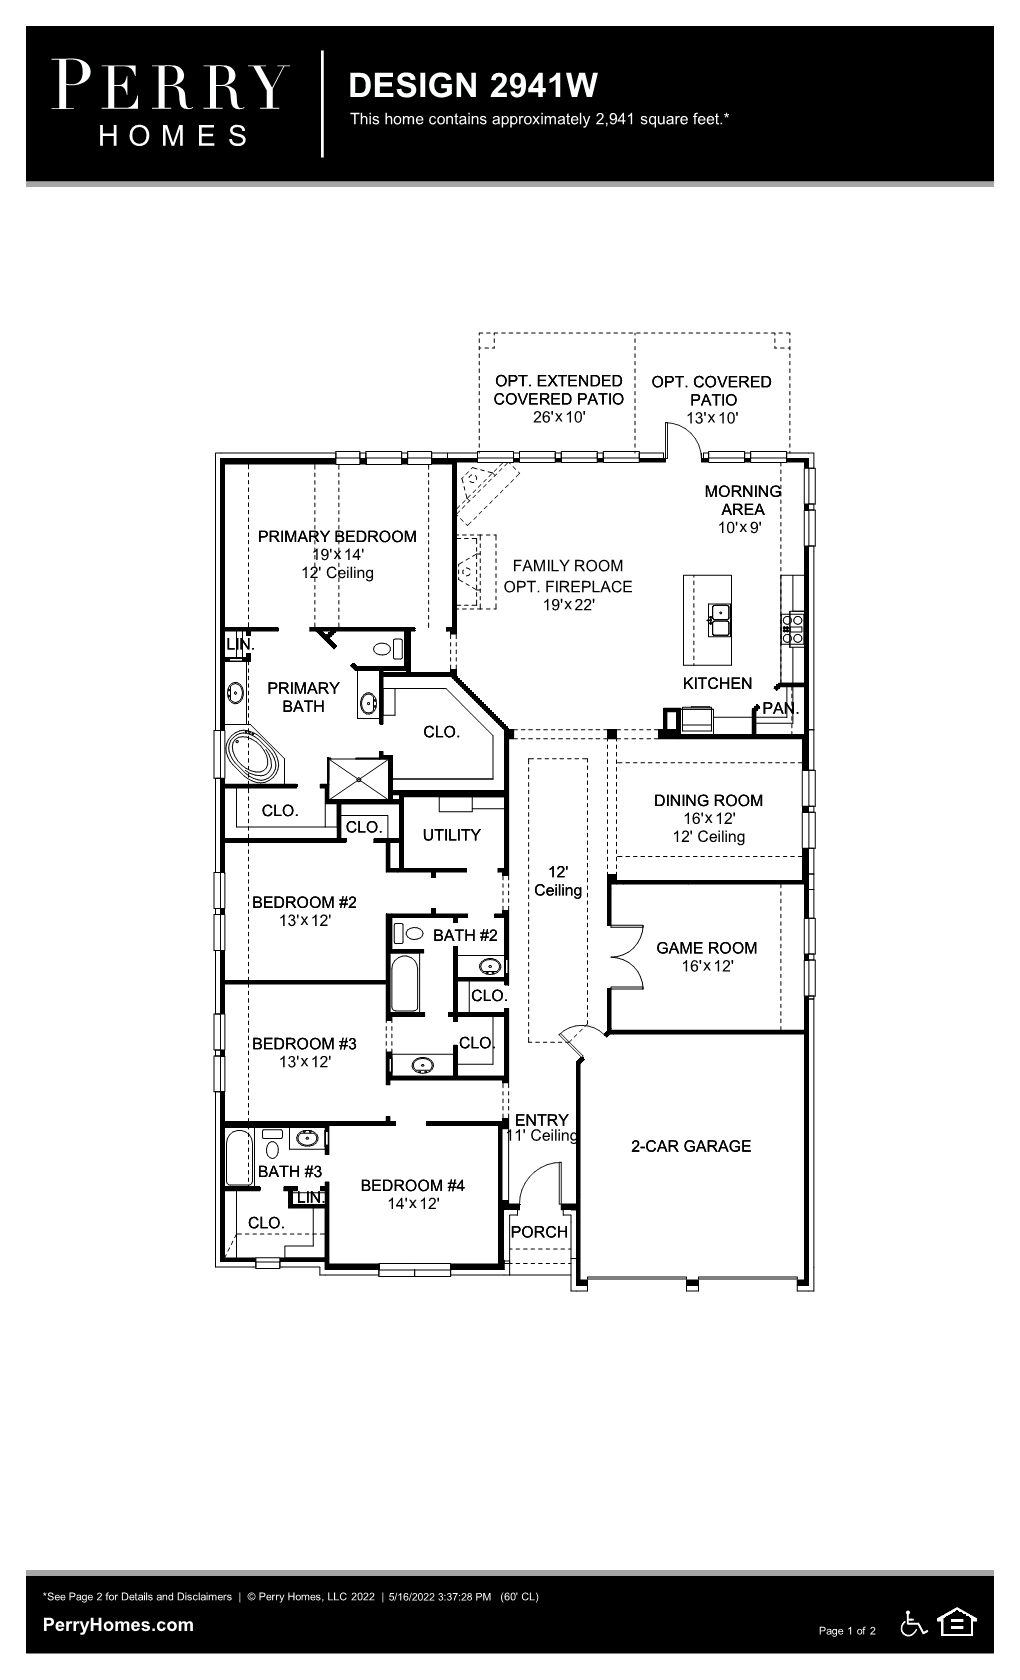 Floor Plan for 2941W